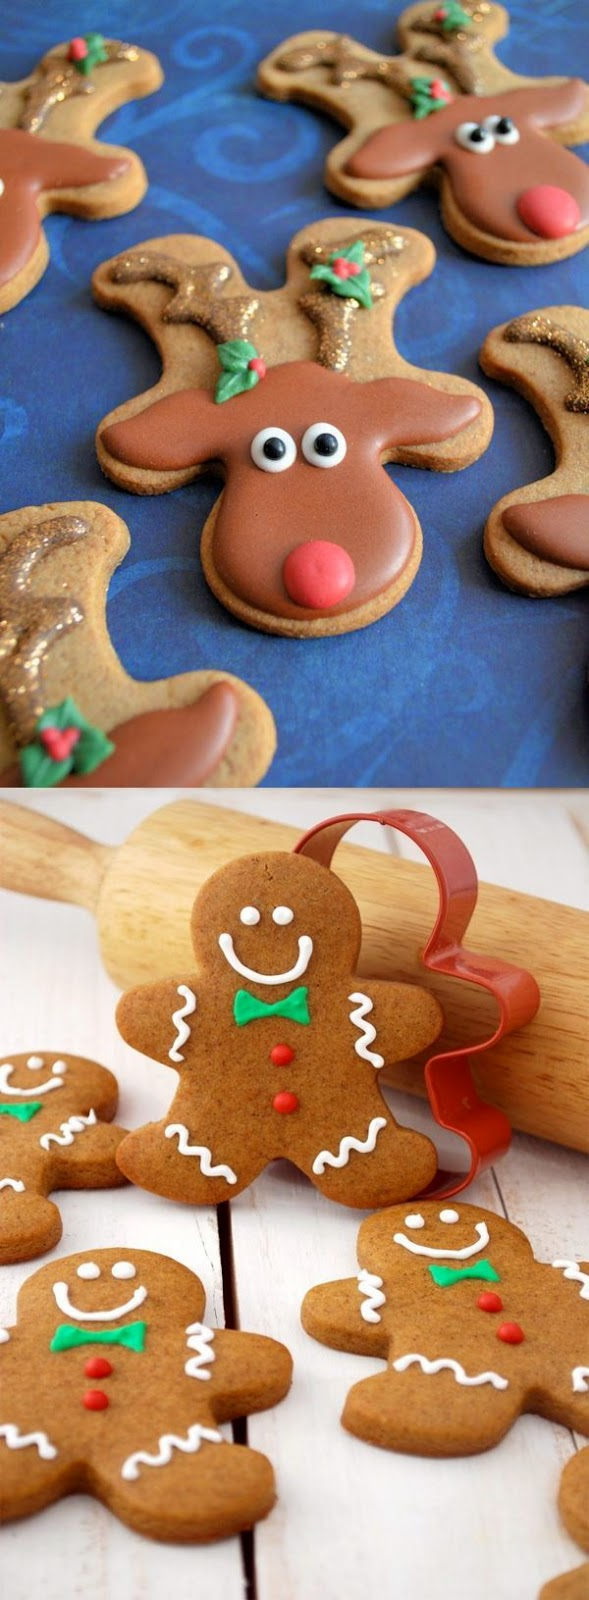 Ginger Bread Cookies Recipe Christmas